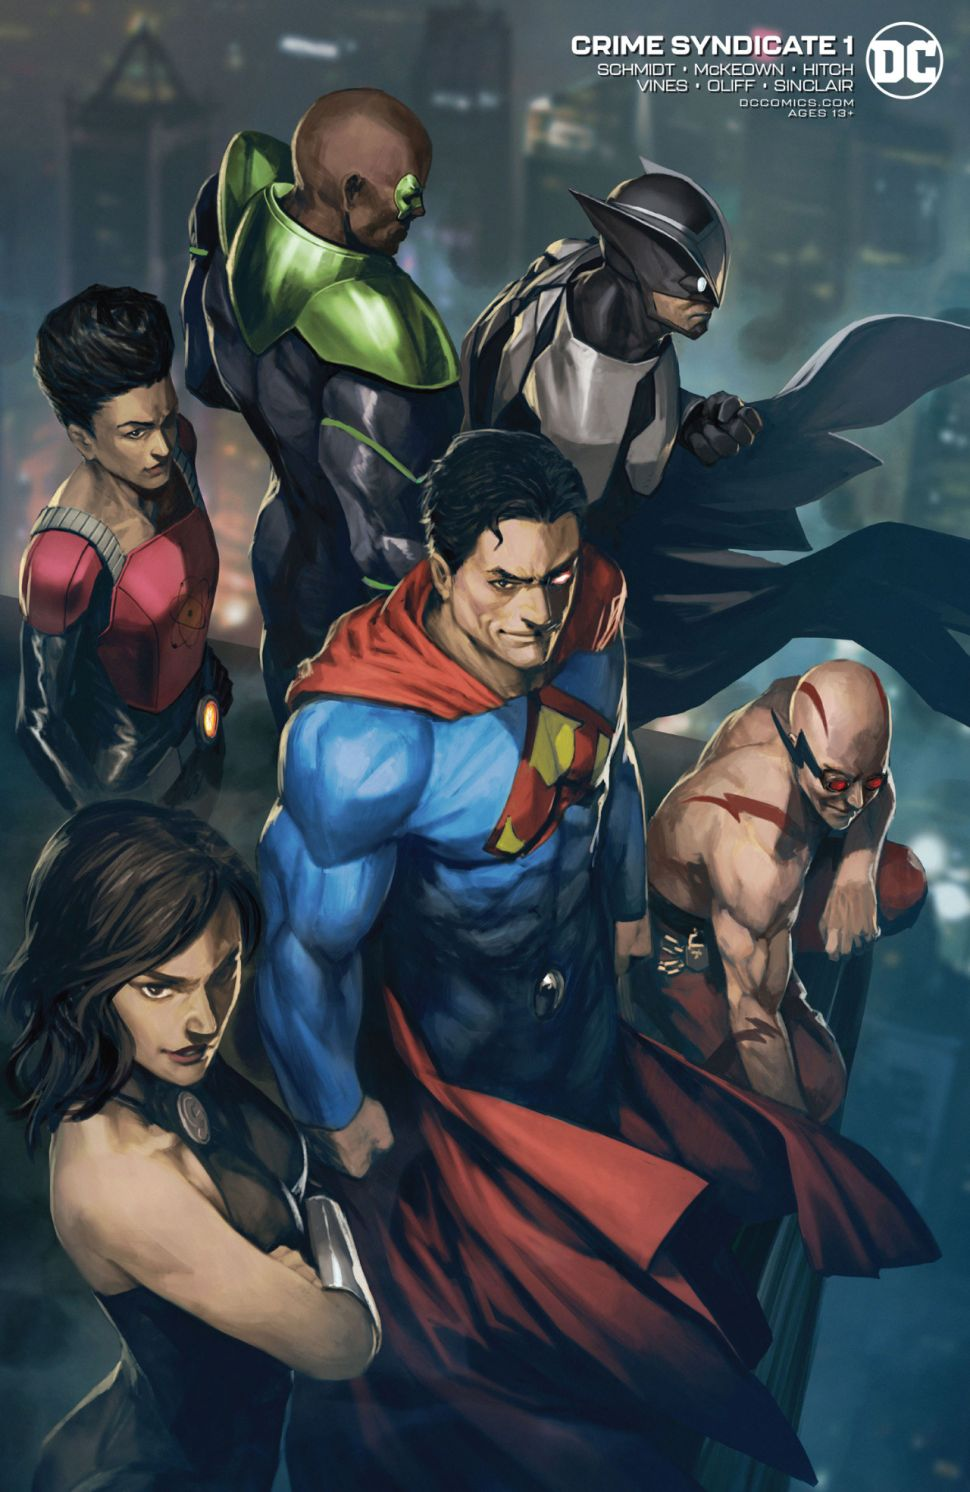 Crime-Syndicate-1-spoilers-0-2 Crime-Syndicate-1-spoilers-0-2